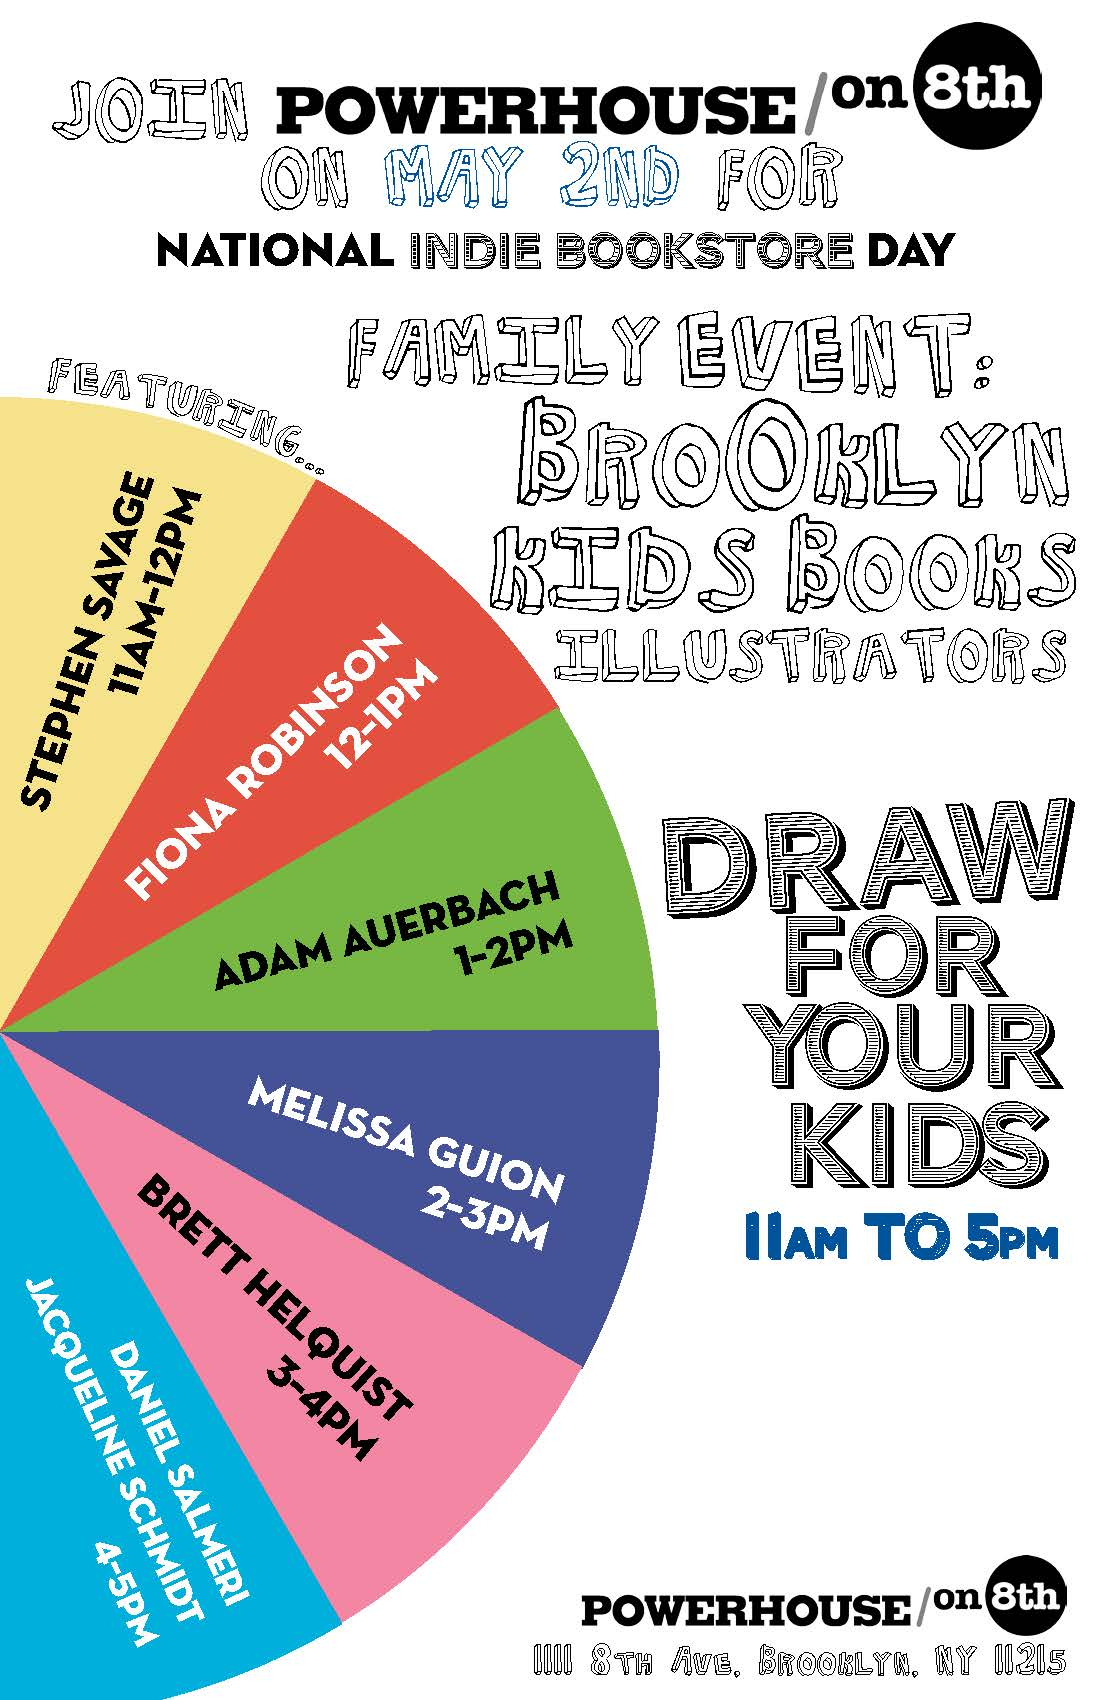 POWERHOUSE on 8th Family Event and May 2nd Indie Bookstore Day: Brooklyn Kids Book Illustrators Draw for your Kids